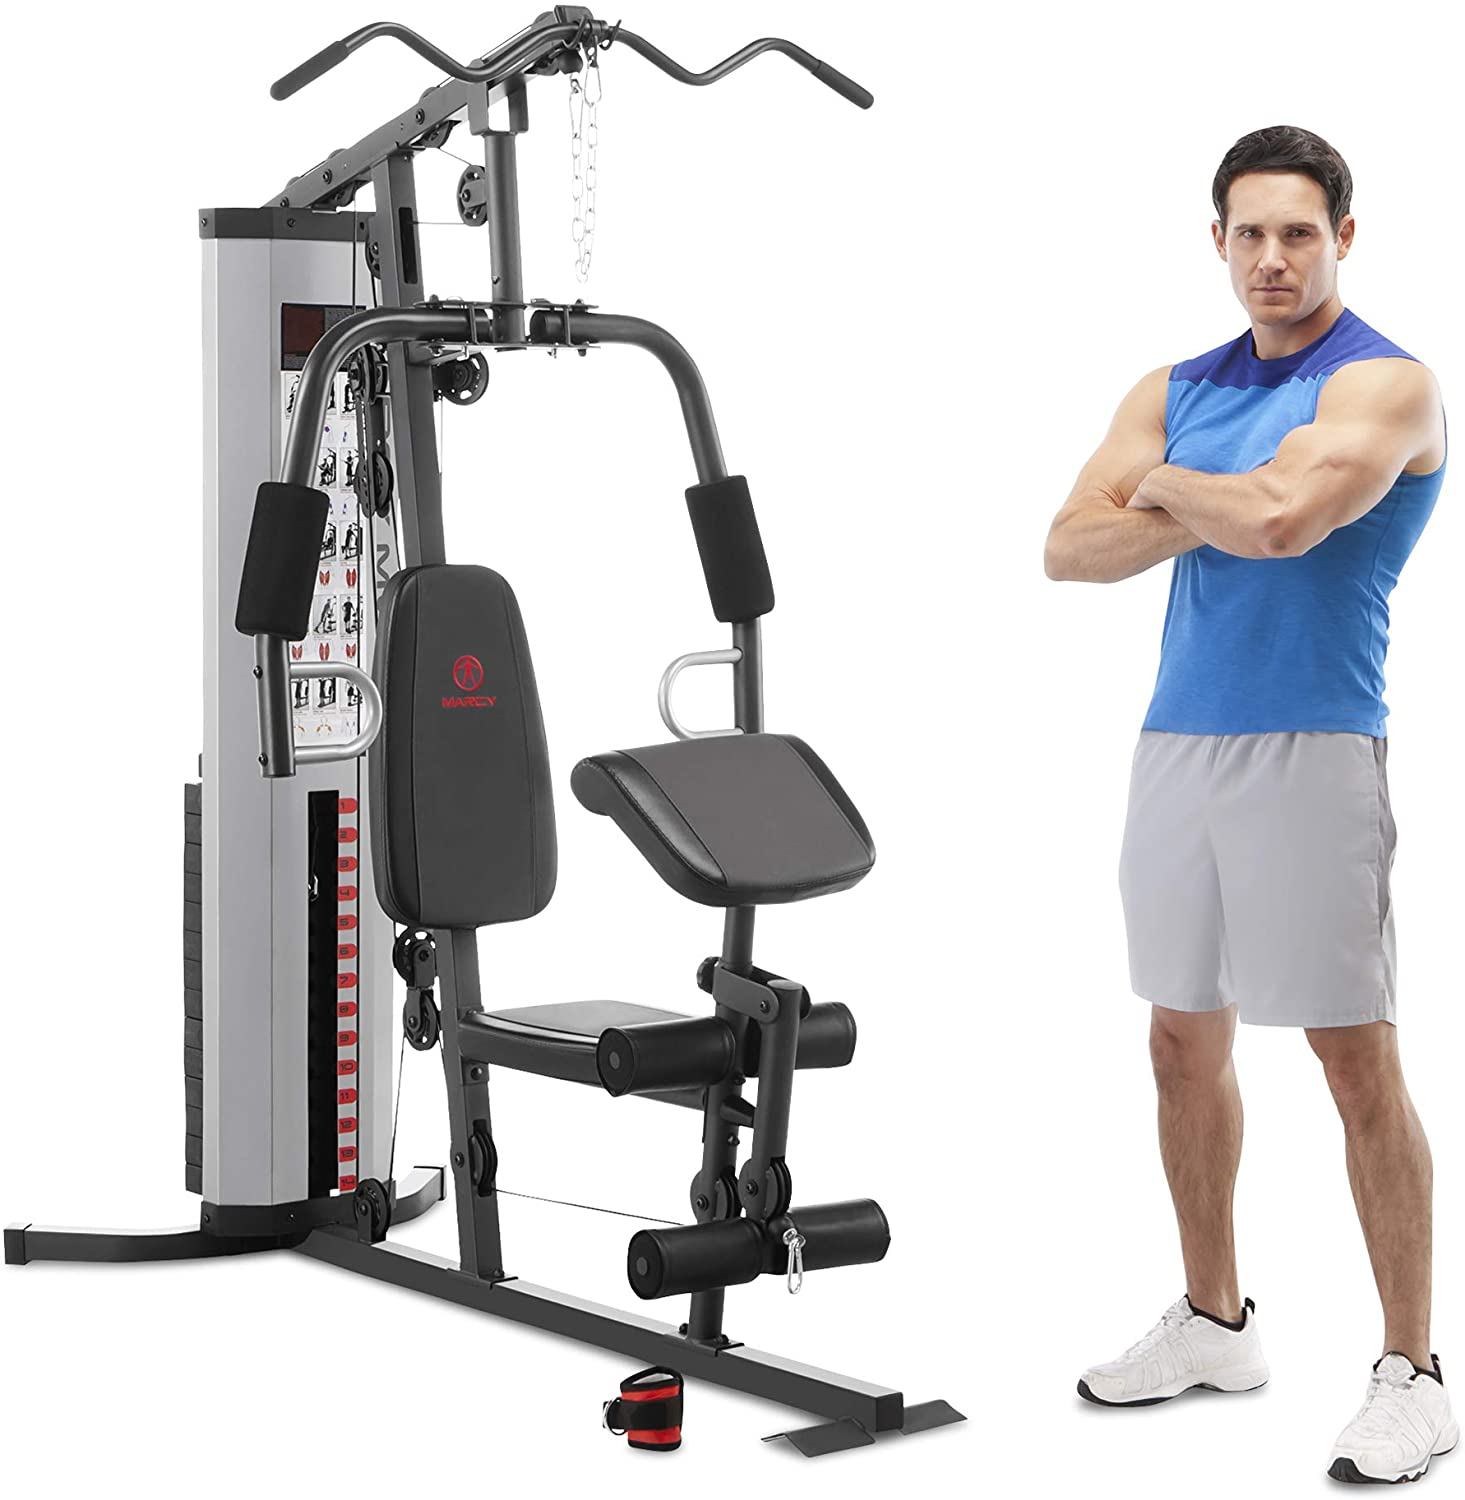 Marcy MWM-988 Multi-Functional Home Gym